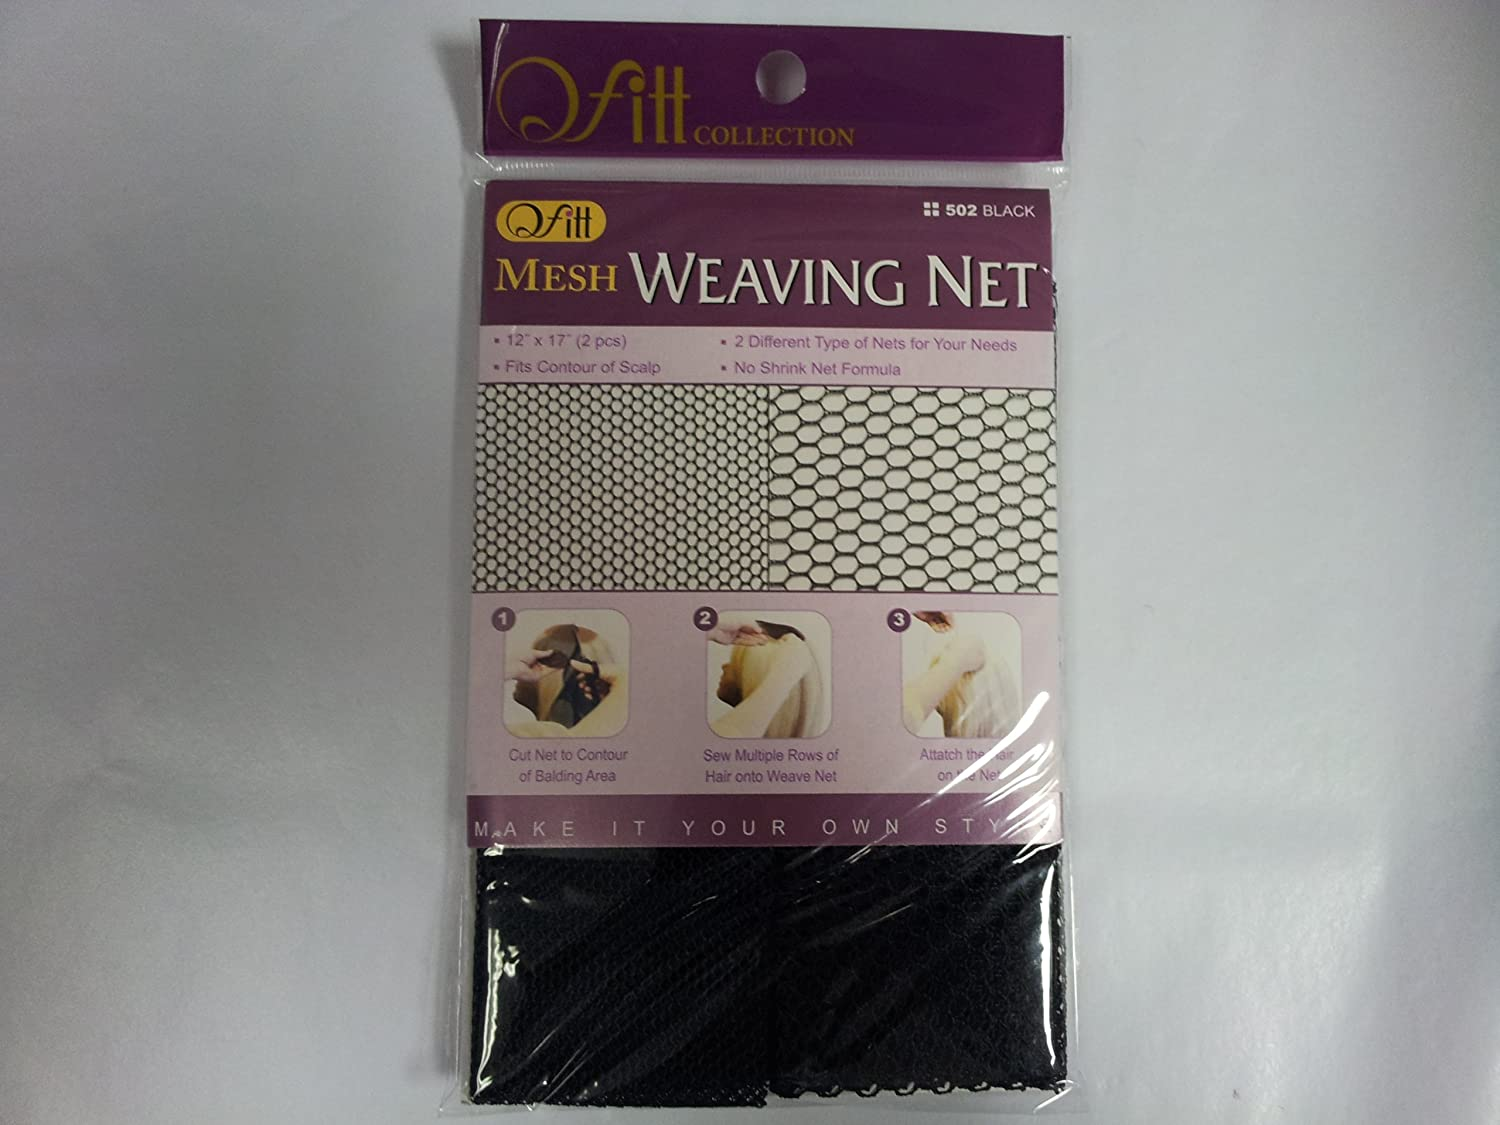 Amazon Qfitt Mesh Weaving Net Pack Of 2 Other Products